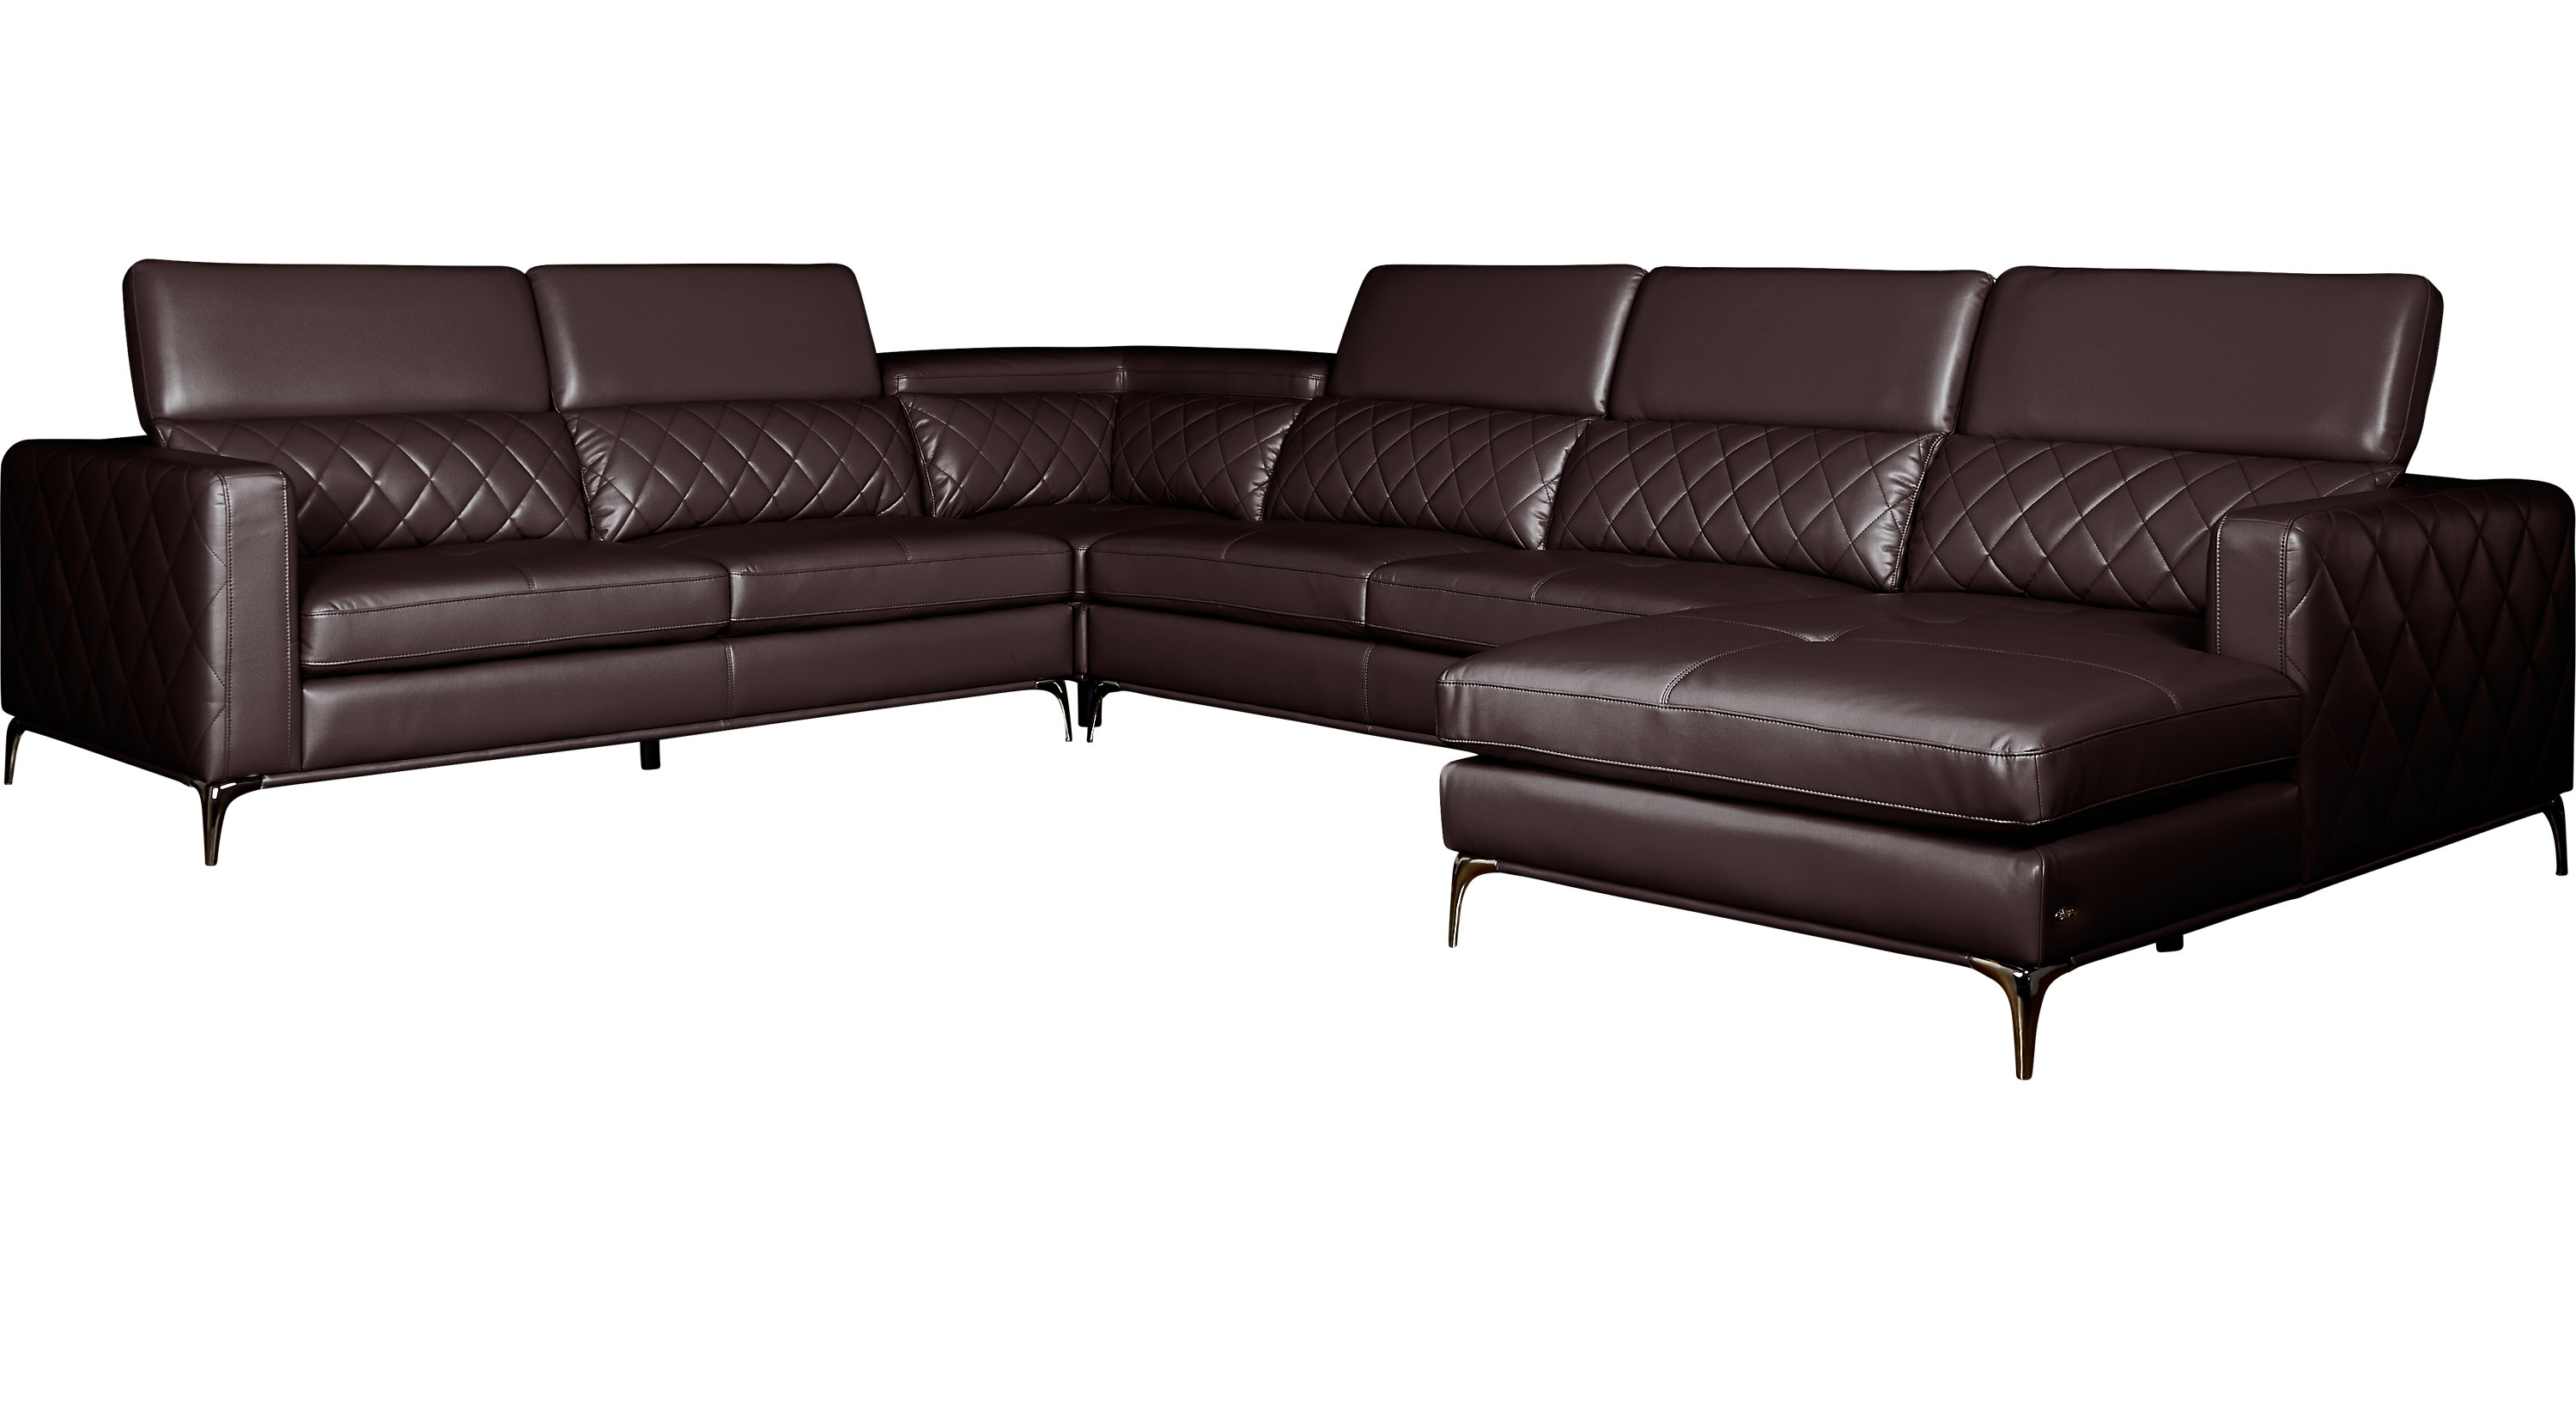 to corner sofa and overstuffed sectionals madison rooms inspirations inspirational classic oversize go fresh ideas with size sectional full slipcover bonded living leather of awesome